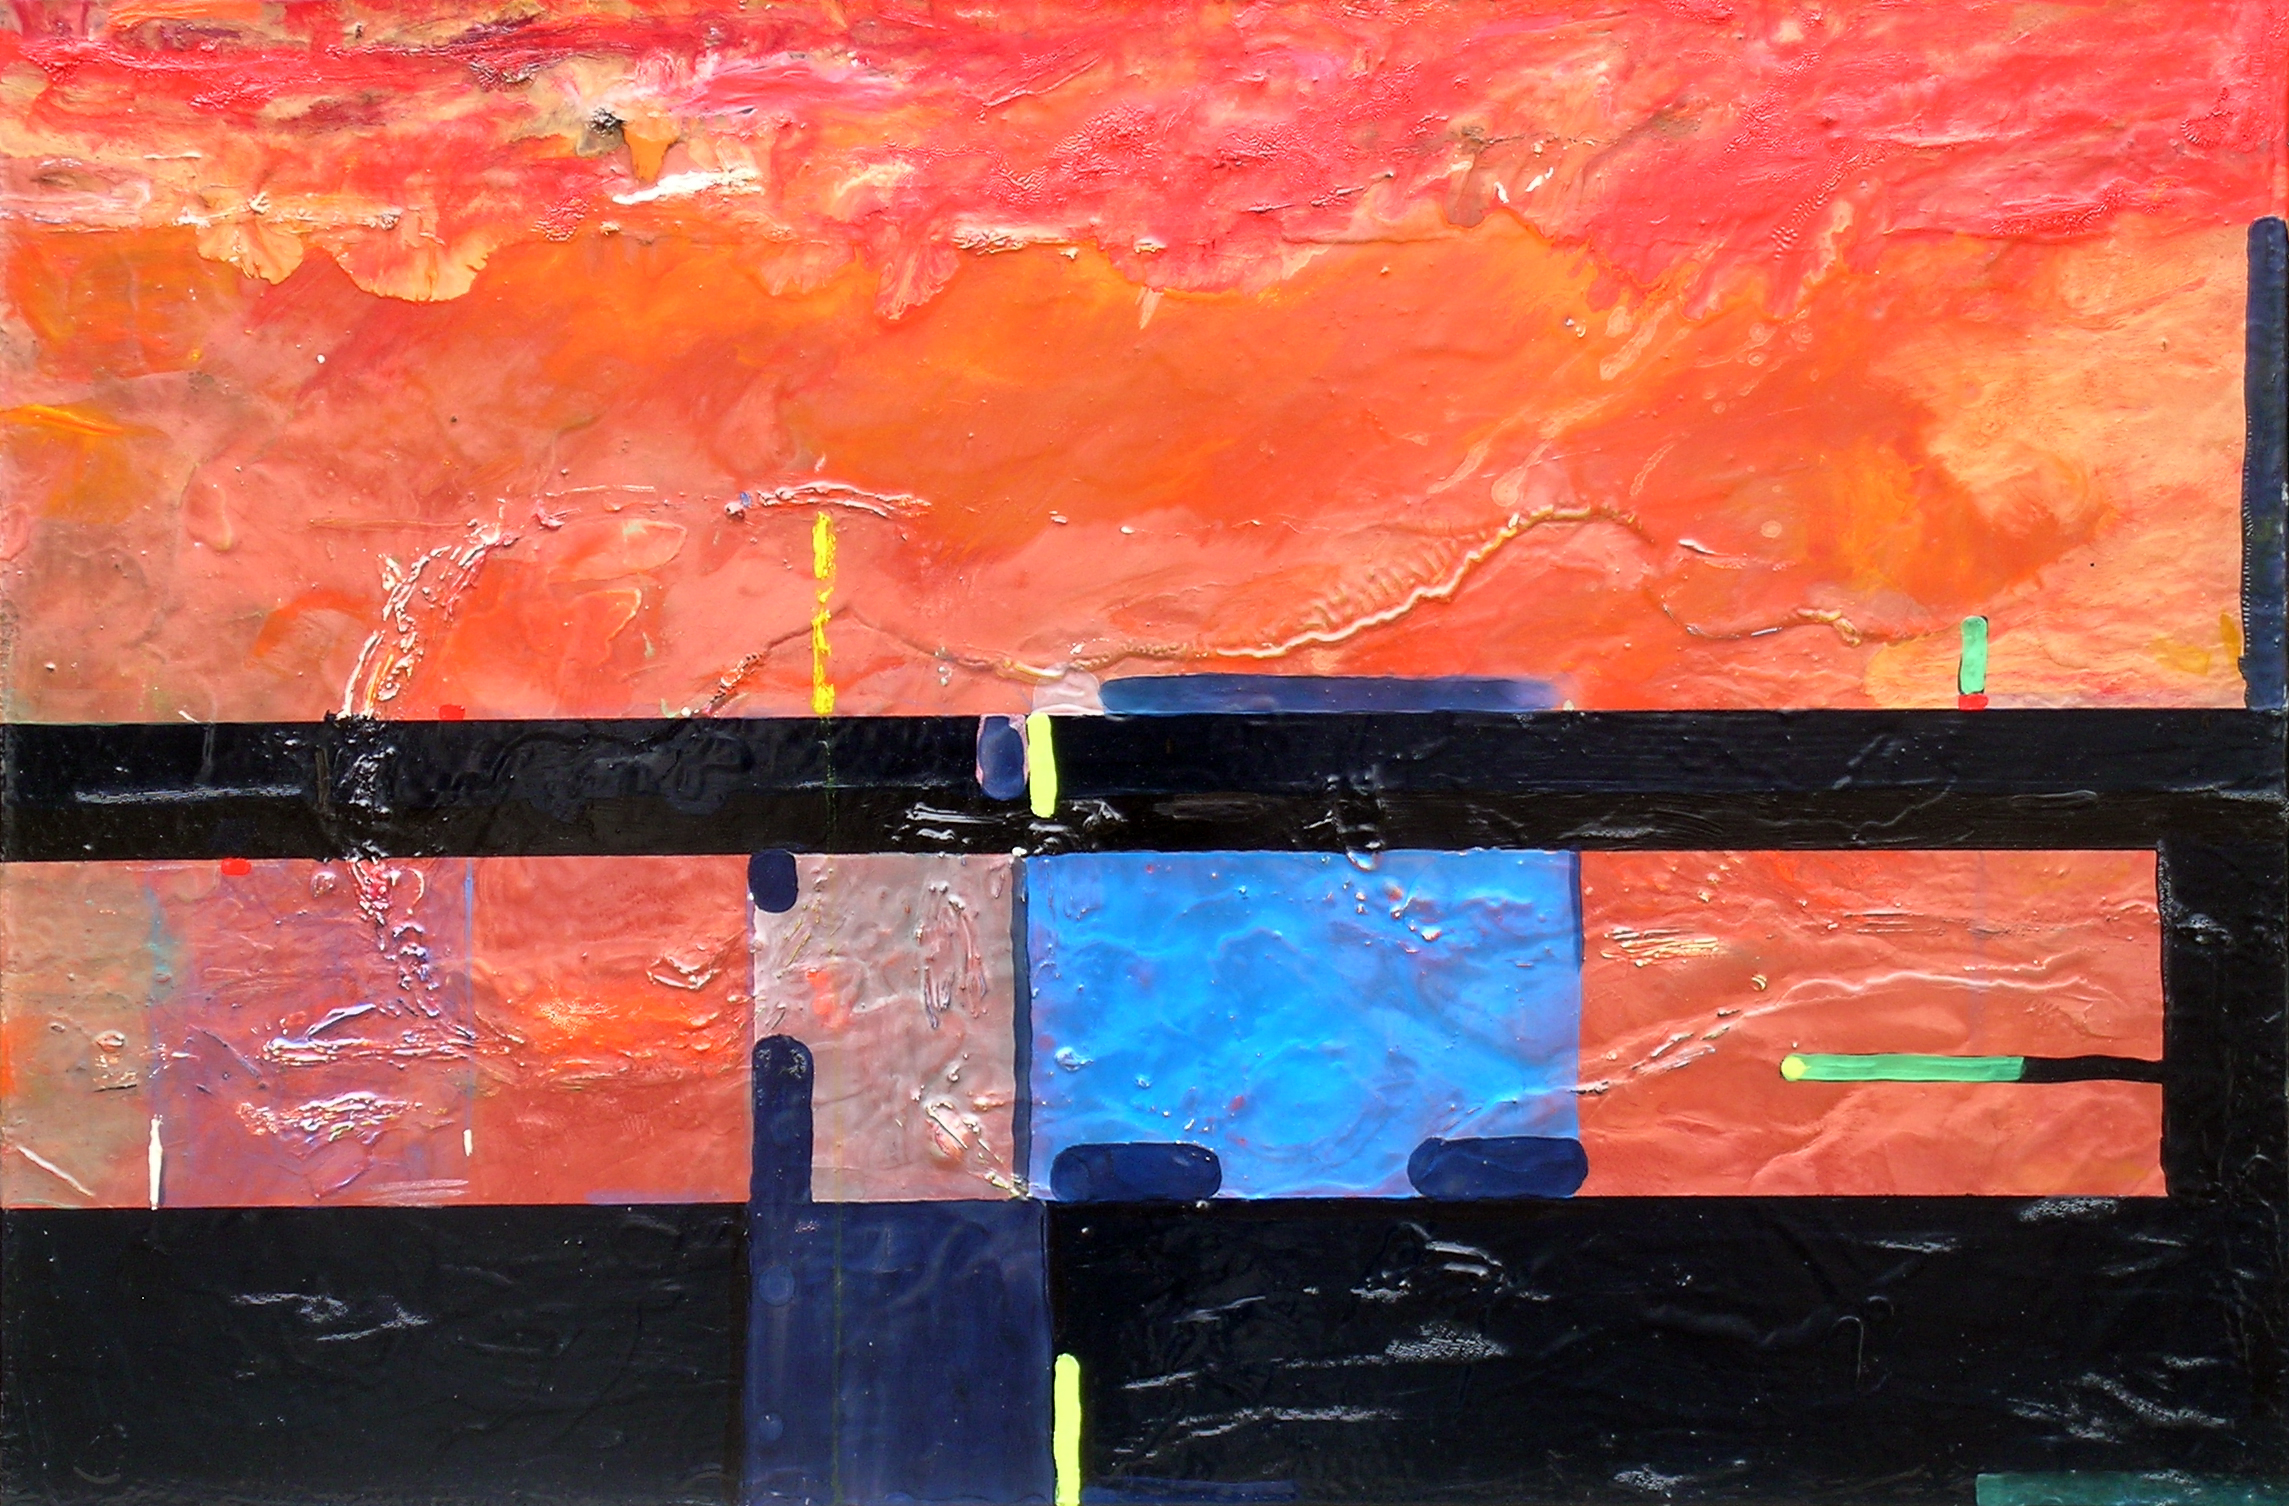 Bunker View, 2008, 24 x 36 inches